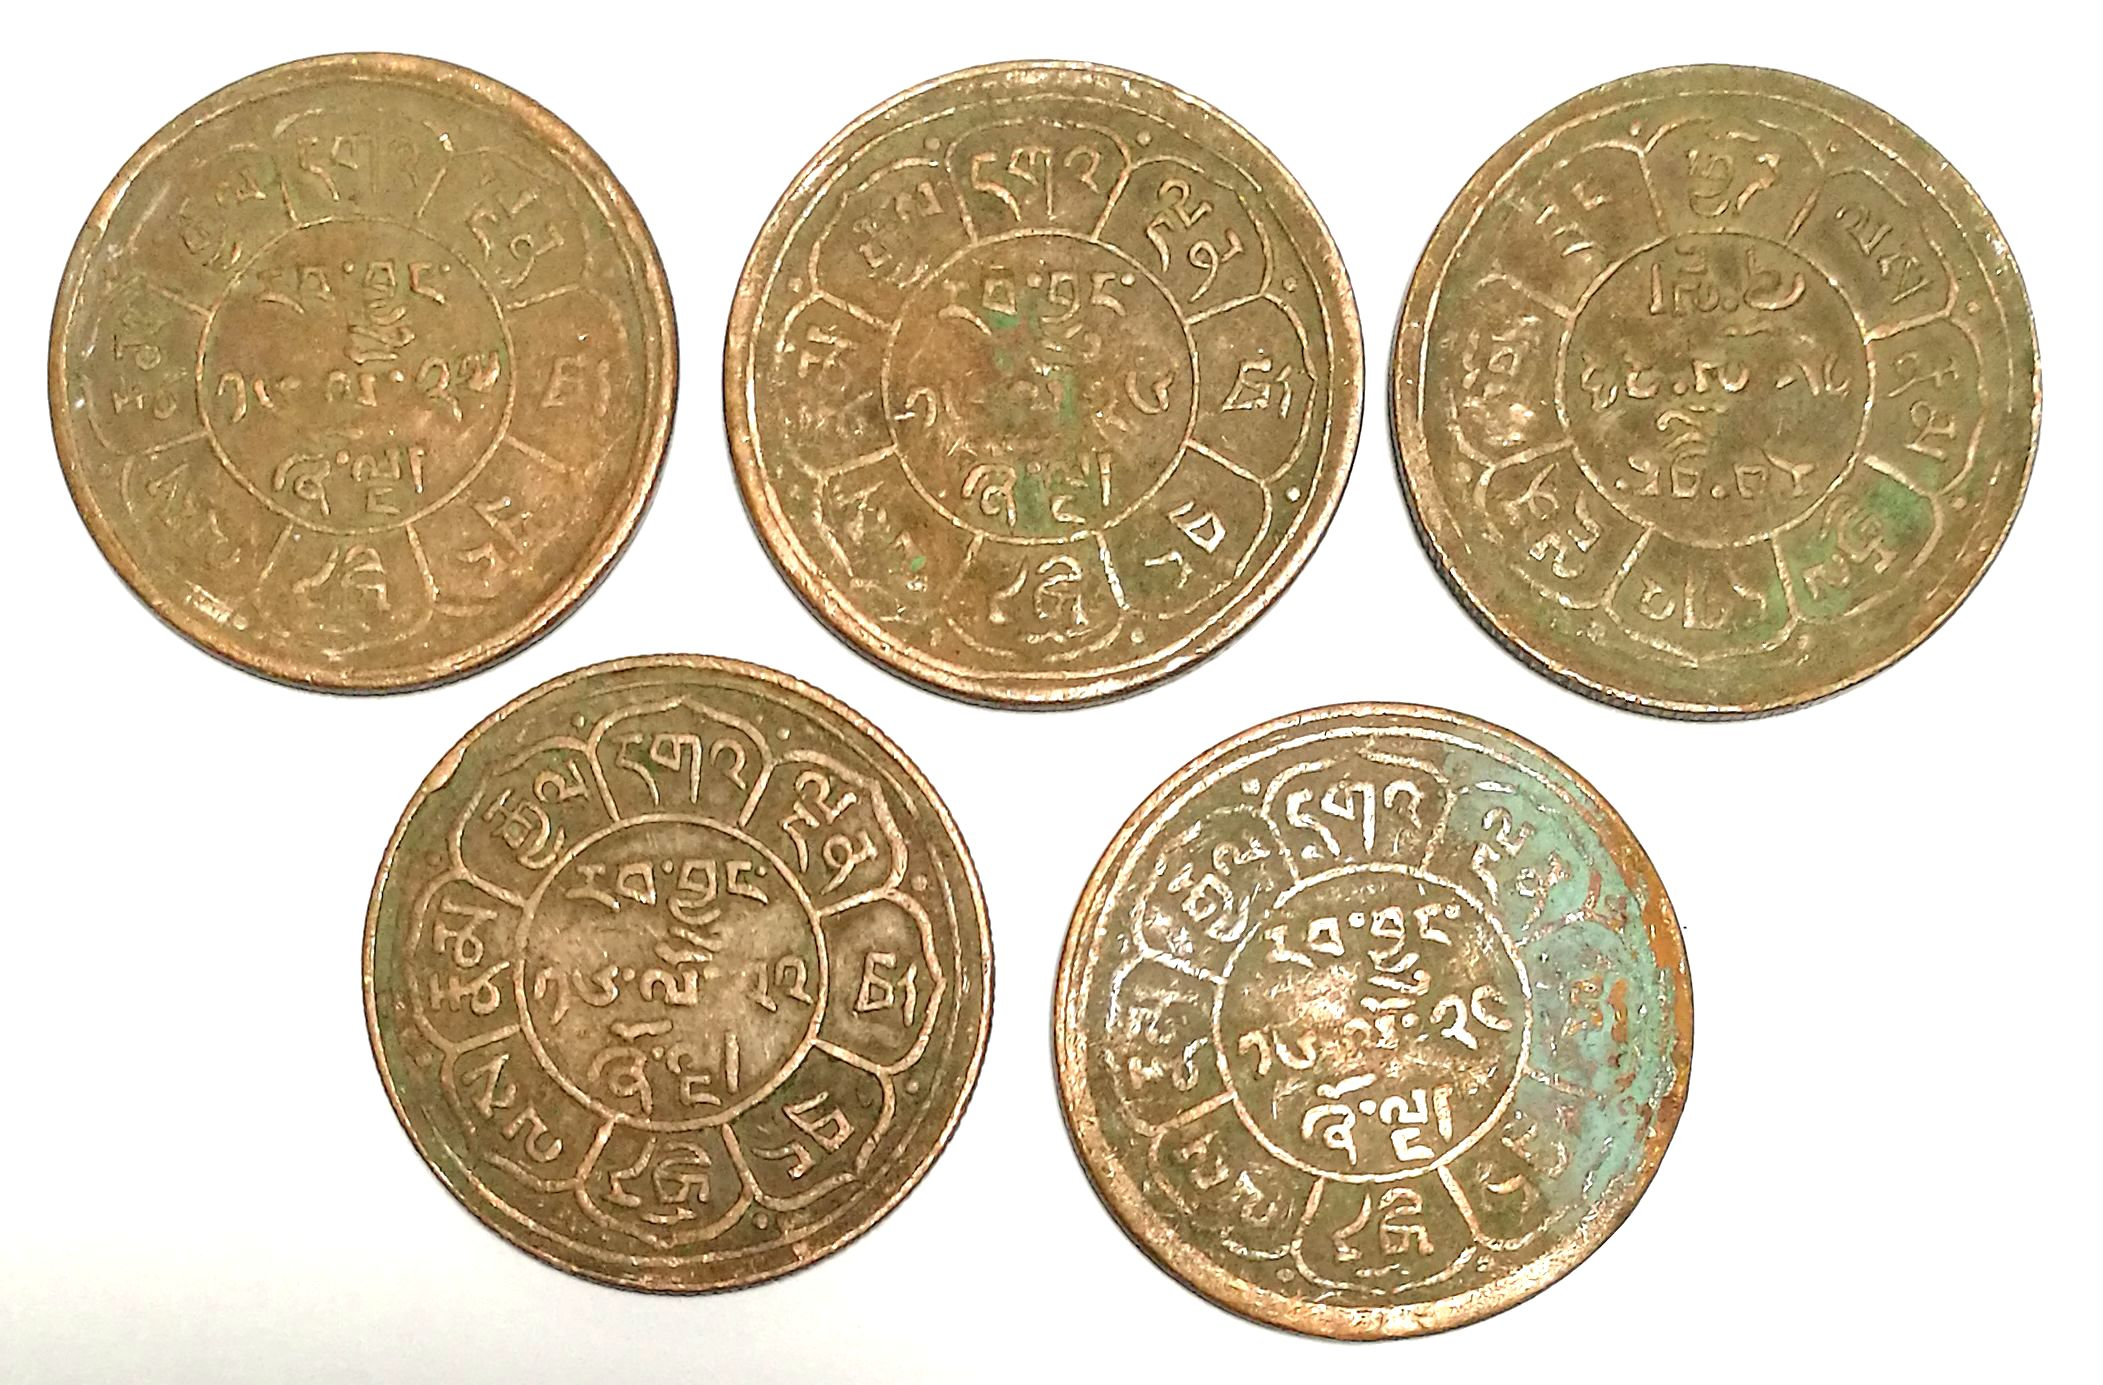 XZ168, Tibetan 5 Pcs Coins Different Year, 5 Sho (1950's)